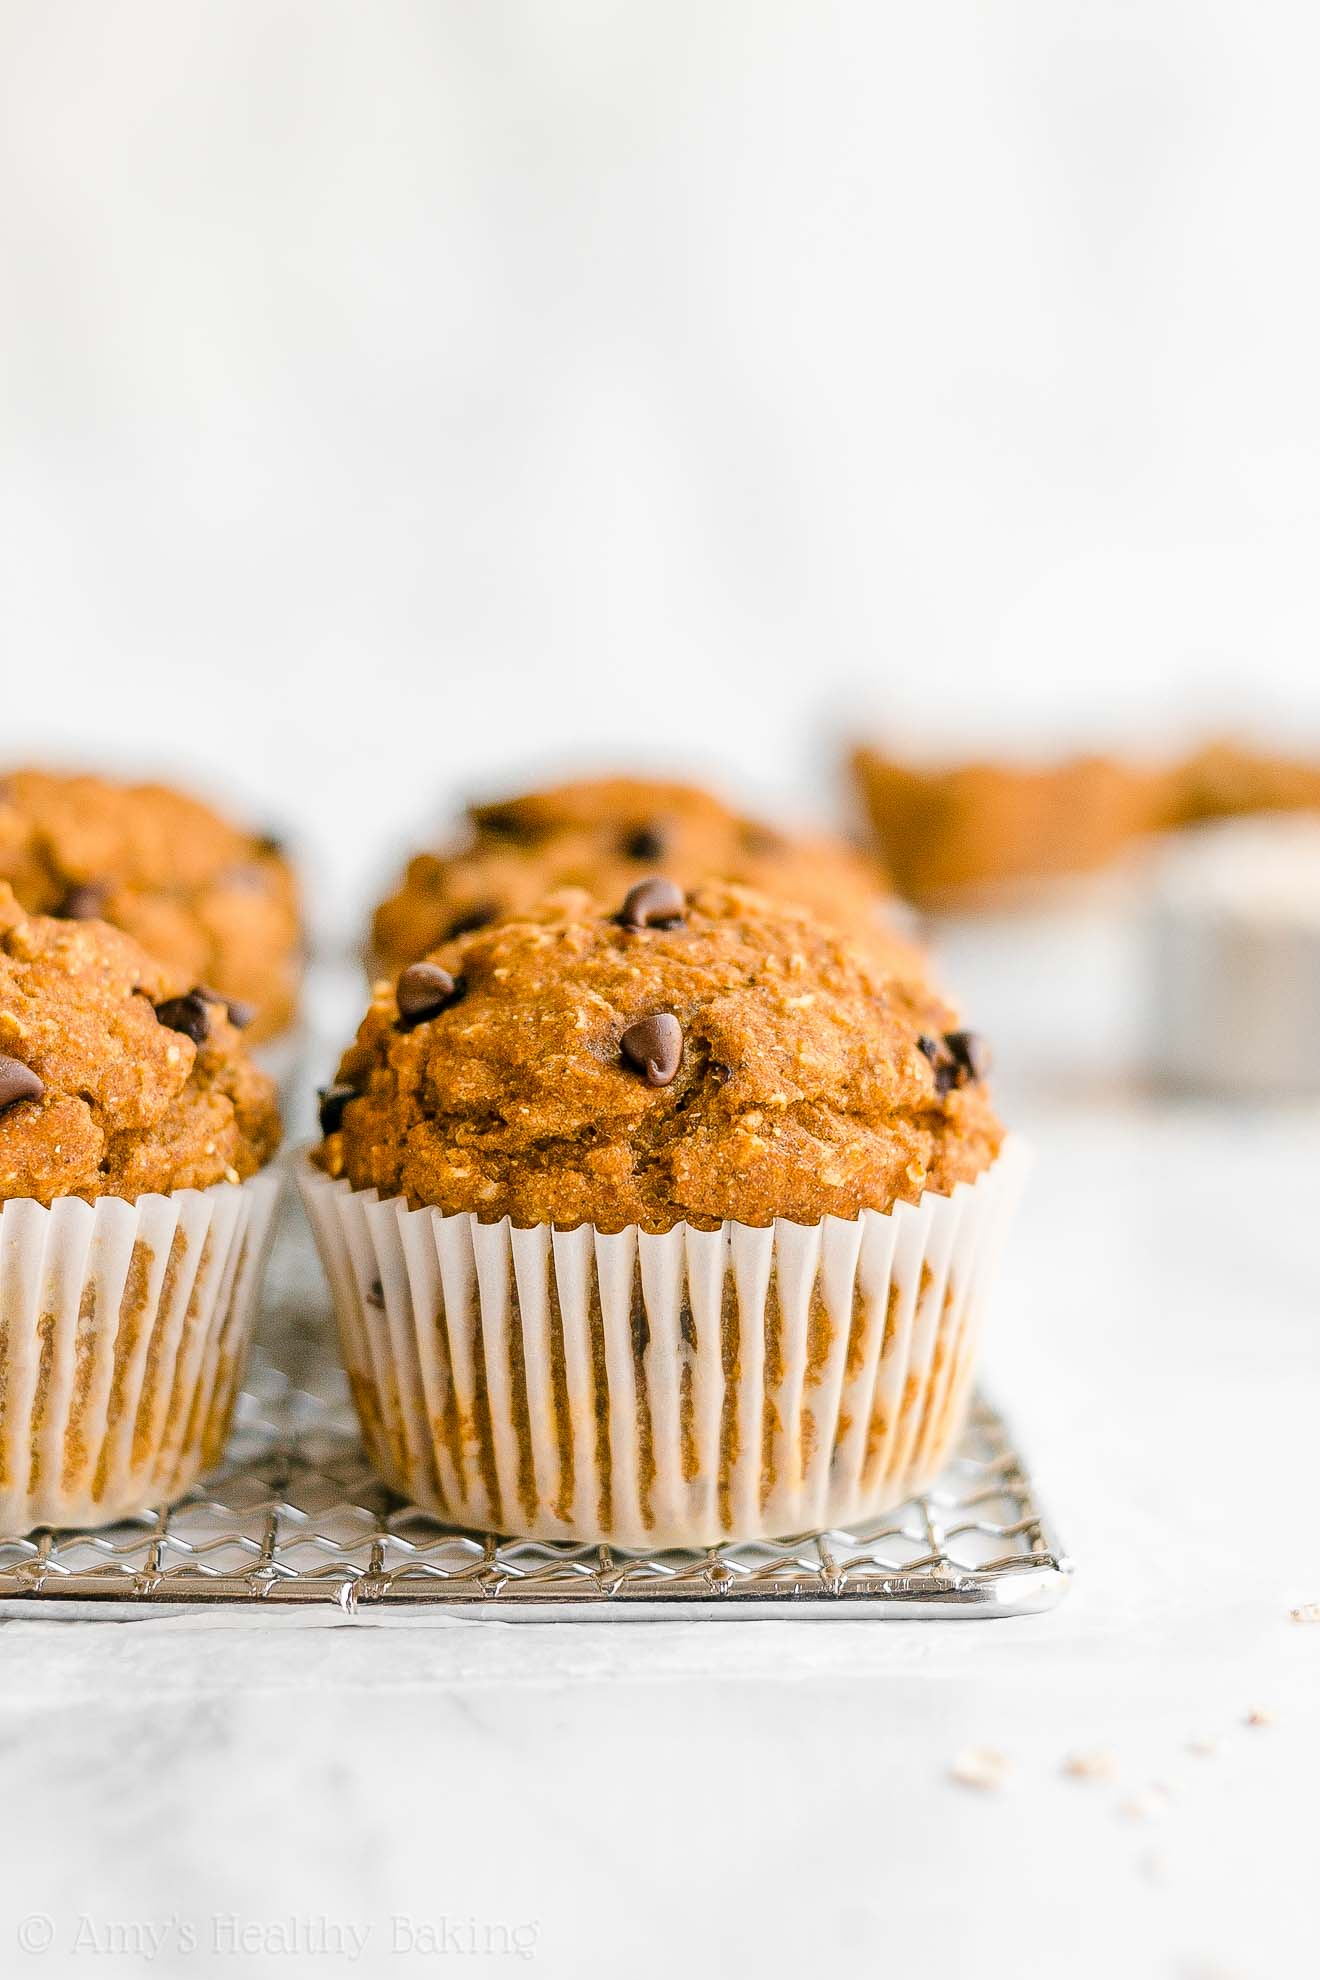 Easy Healthy Low Fat Sugar Free Pumpkin Chocolate Chip Oatmeal Muffins